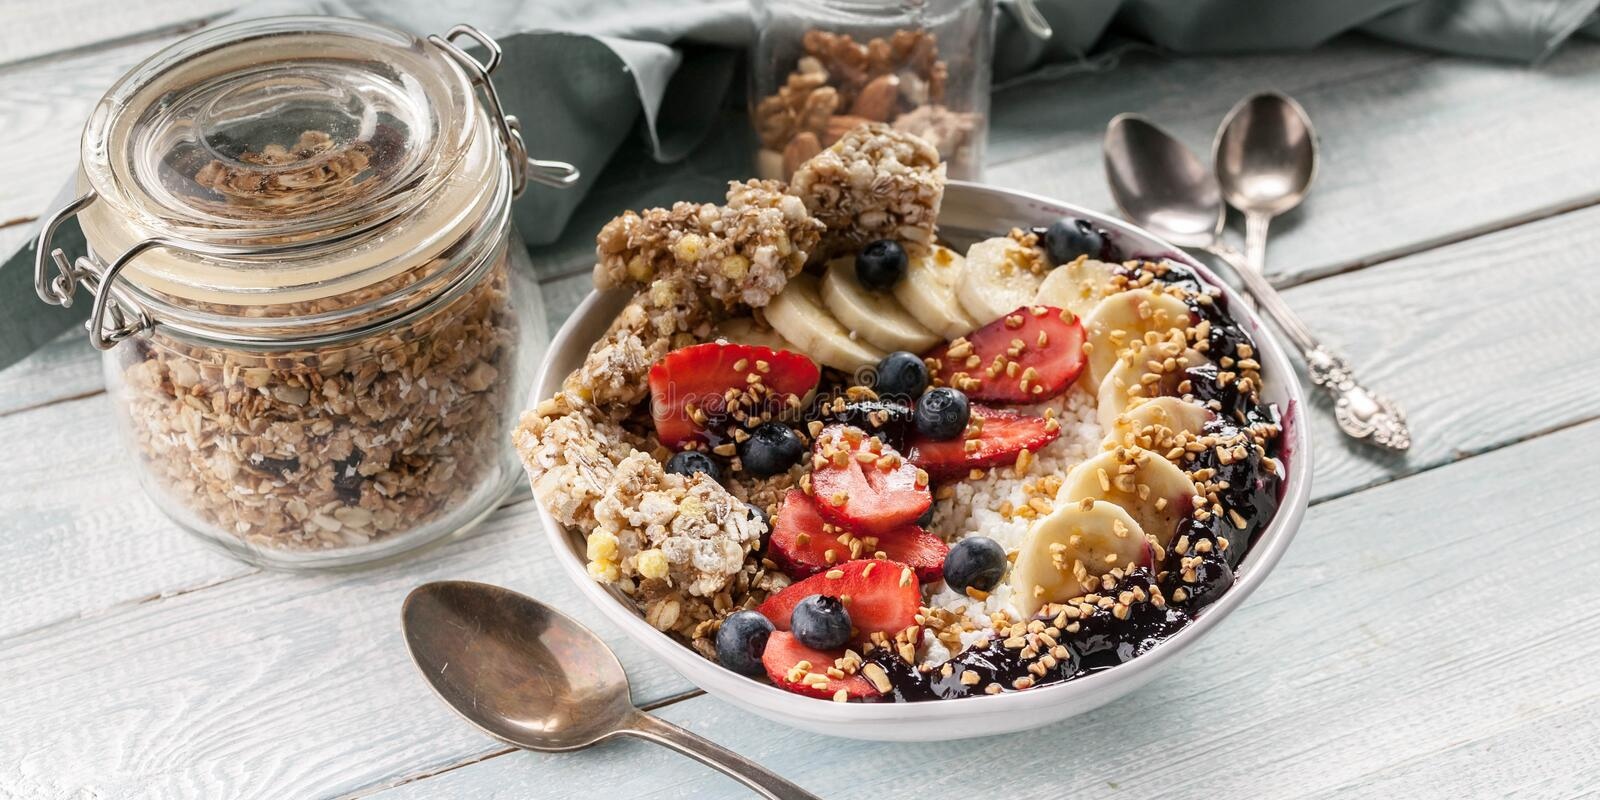 Food banner. Organic breakfast. Cottage cheese, granola, bananas, strawberries, blueberries and puffed rice. Wooden table stock images